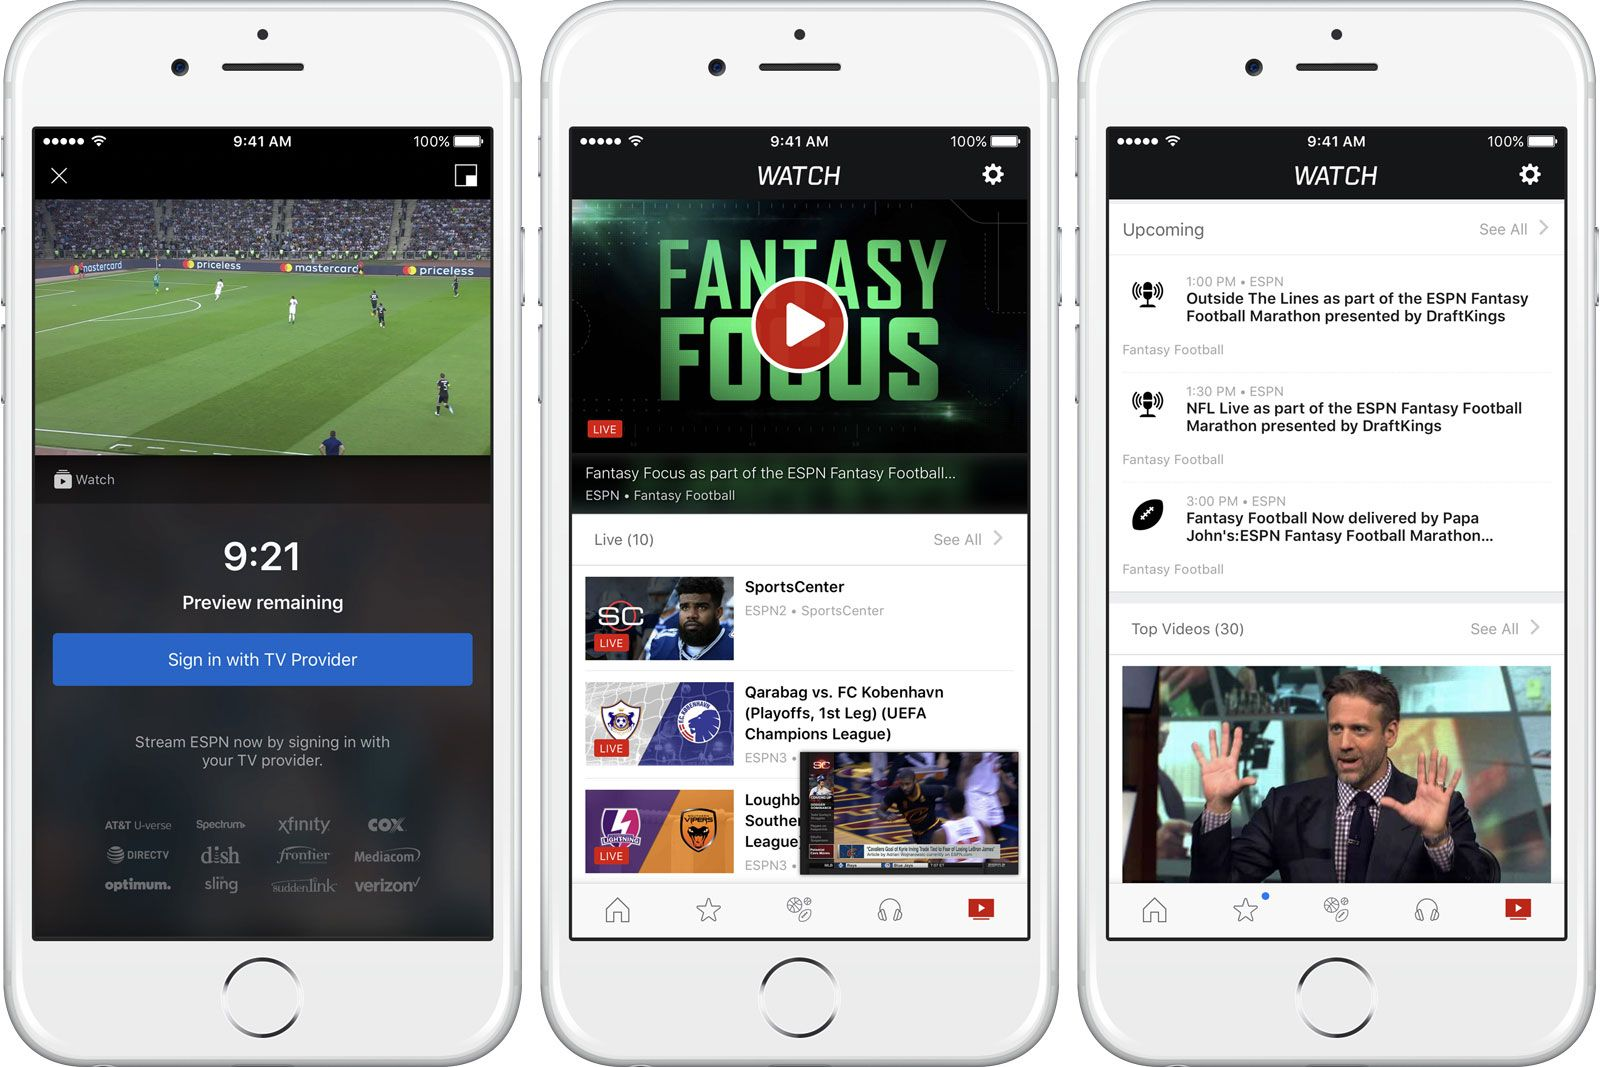 ESPN's mobile app personalizes your live sports streams